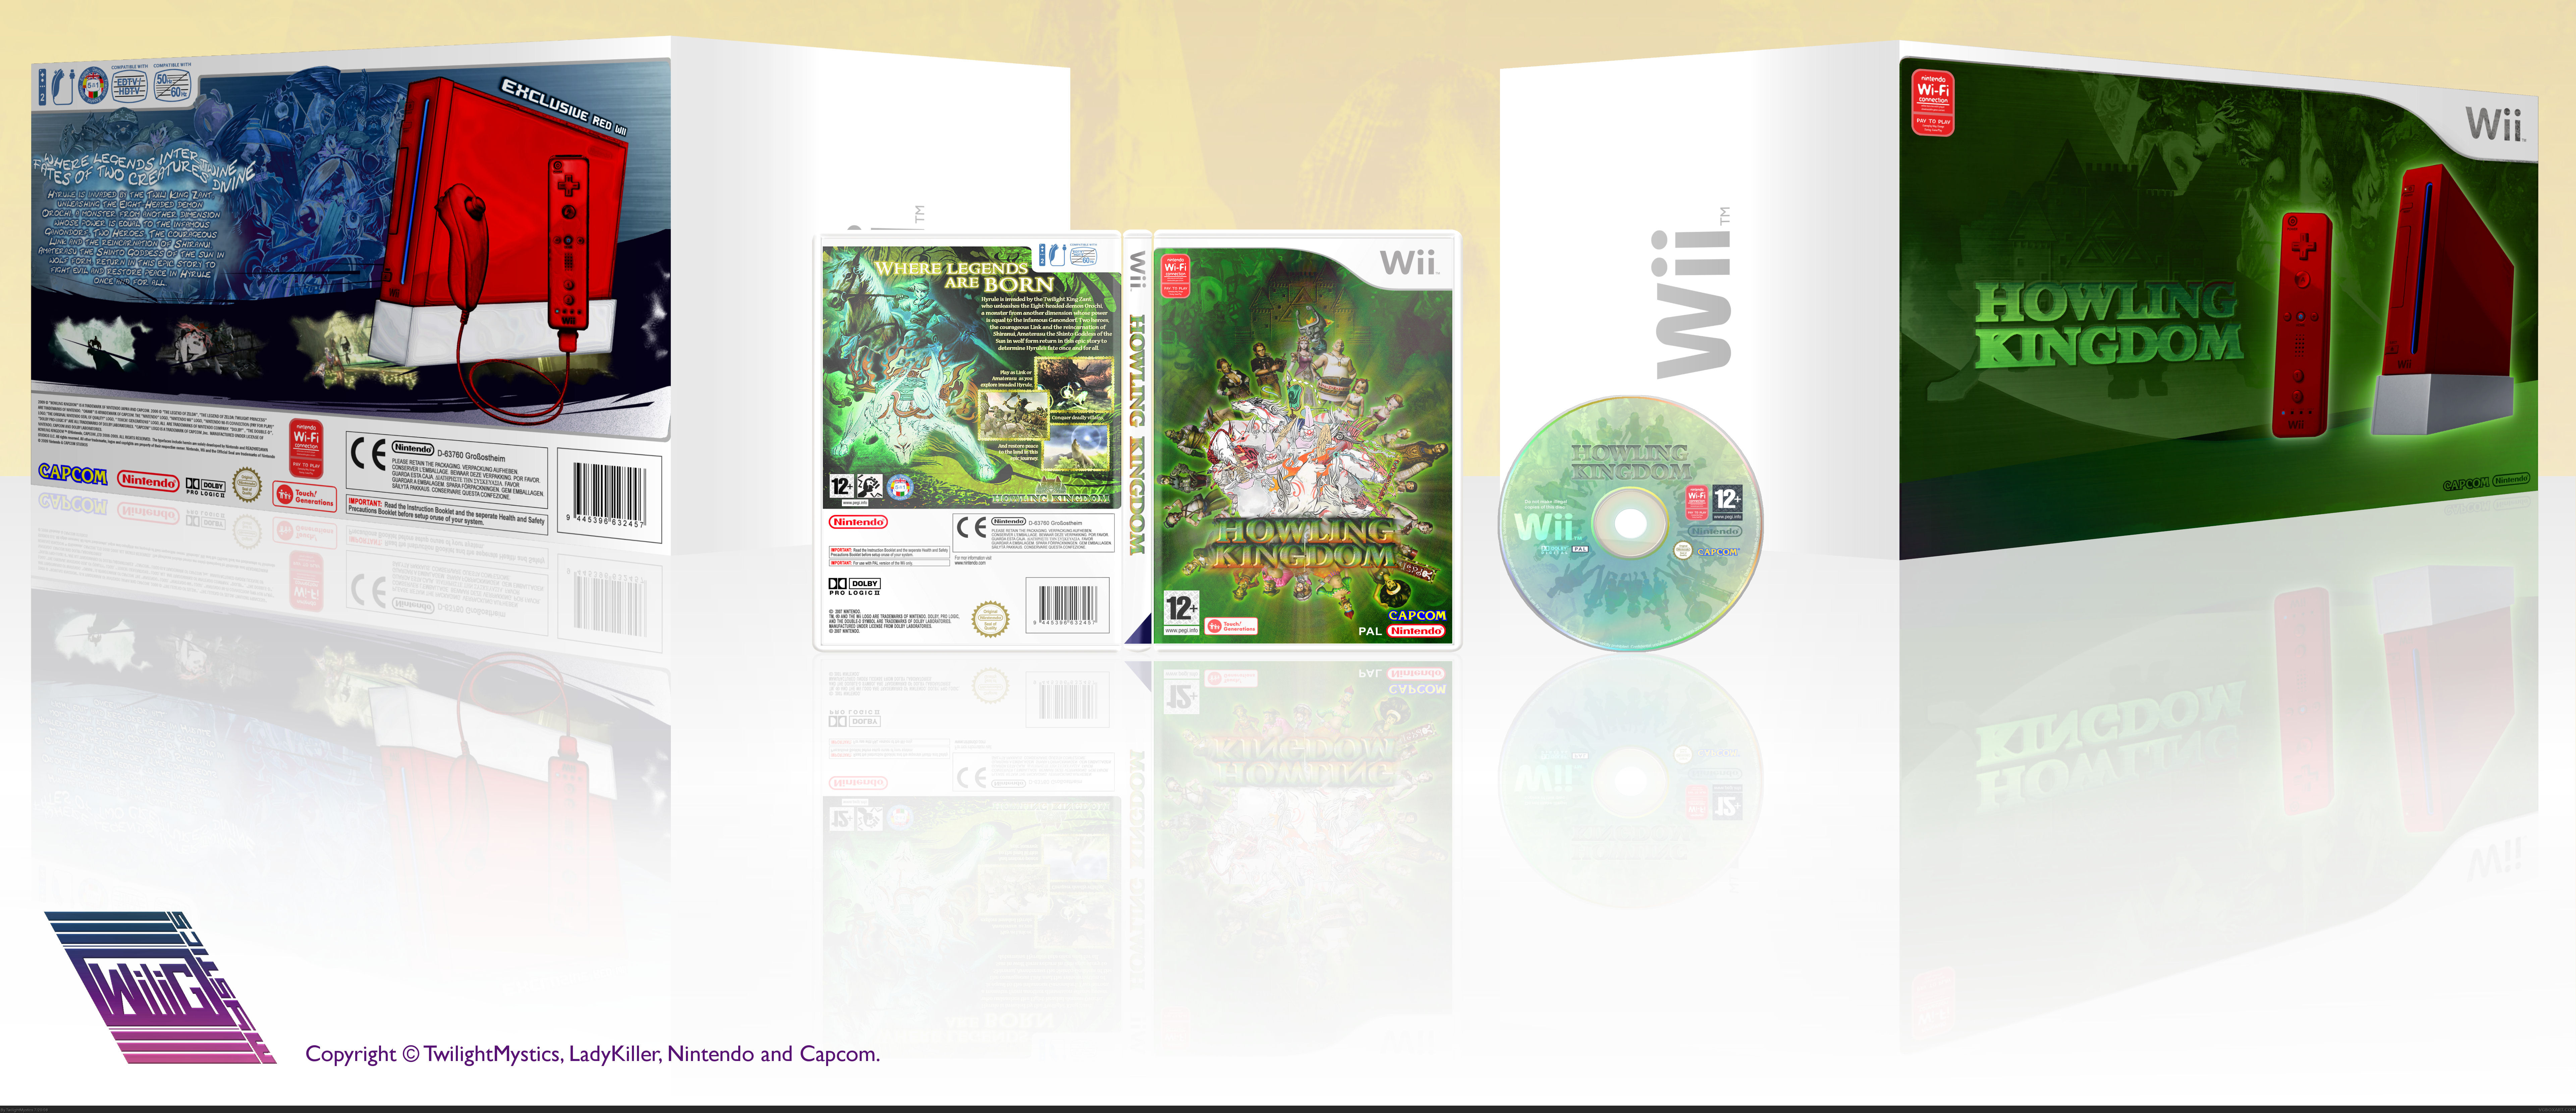 Howling Kingdom ( Inclusive Wii Bundle Boxart) box cover